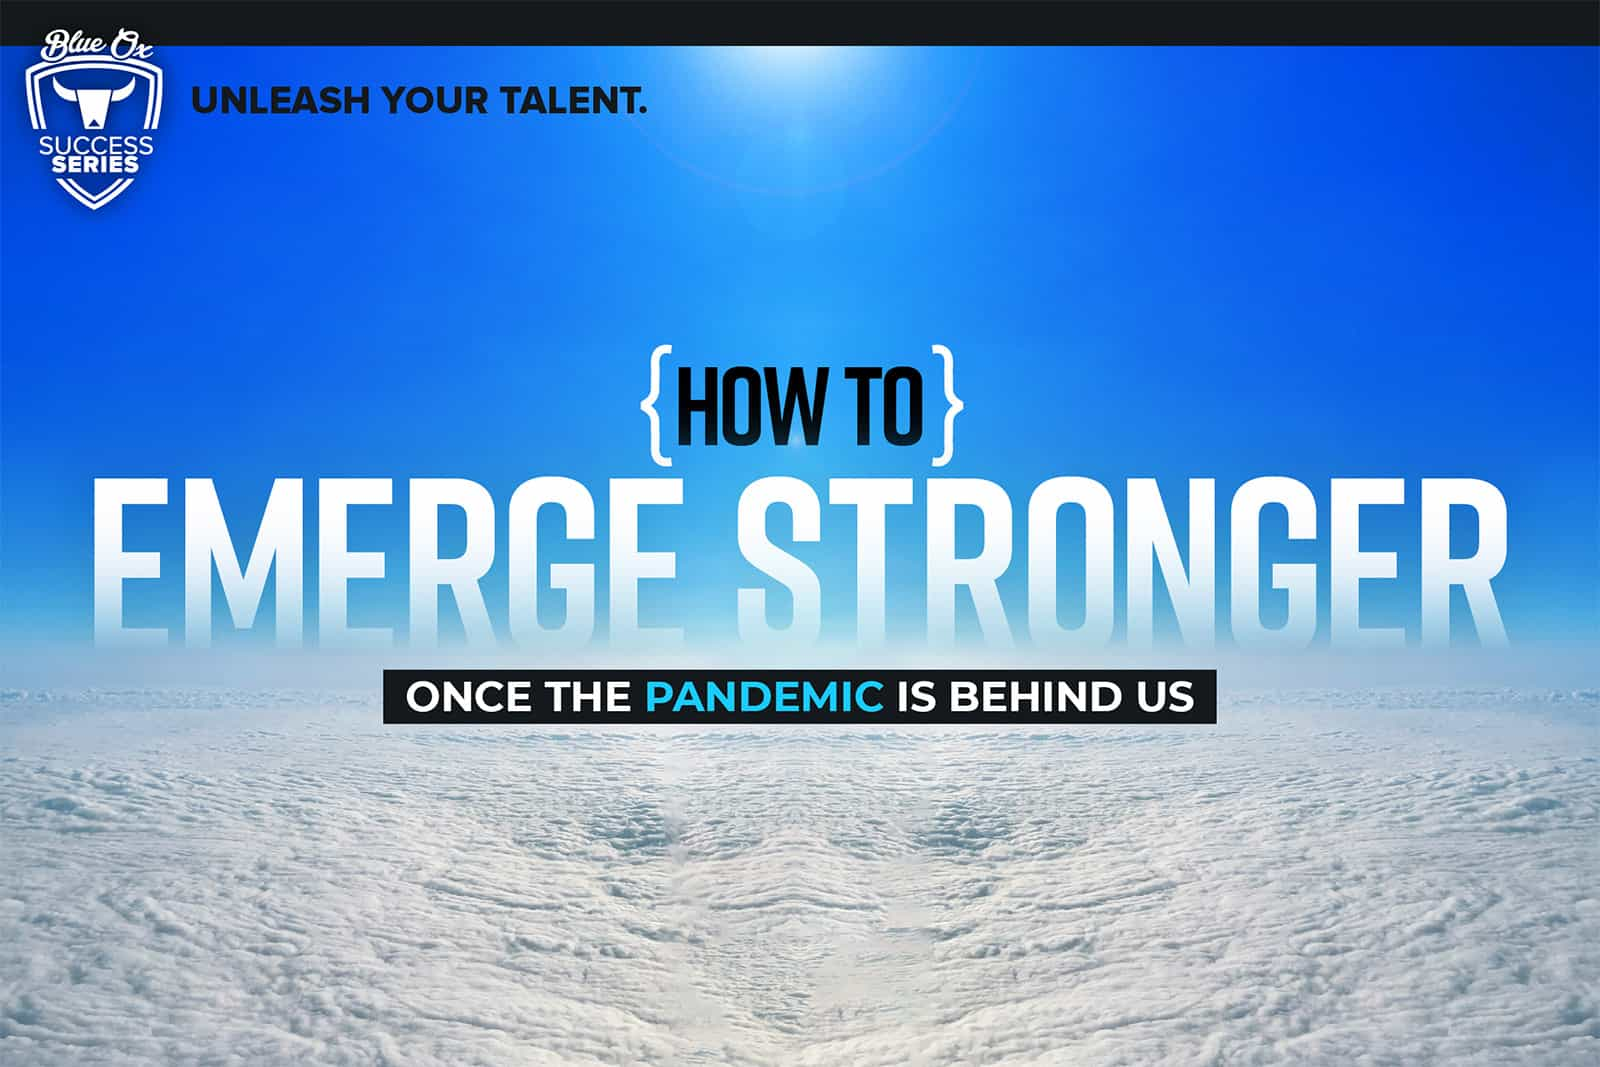 How to Emerge Stronger